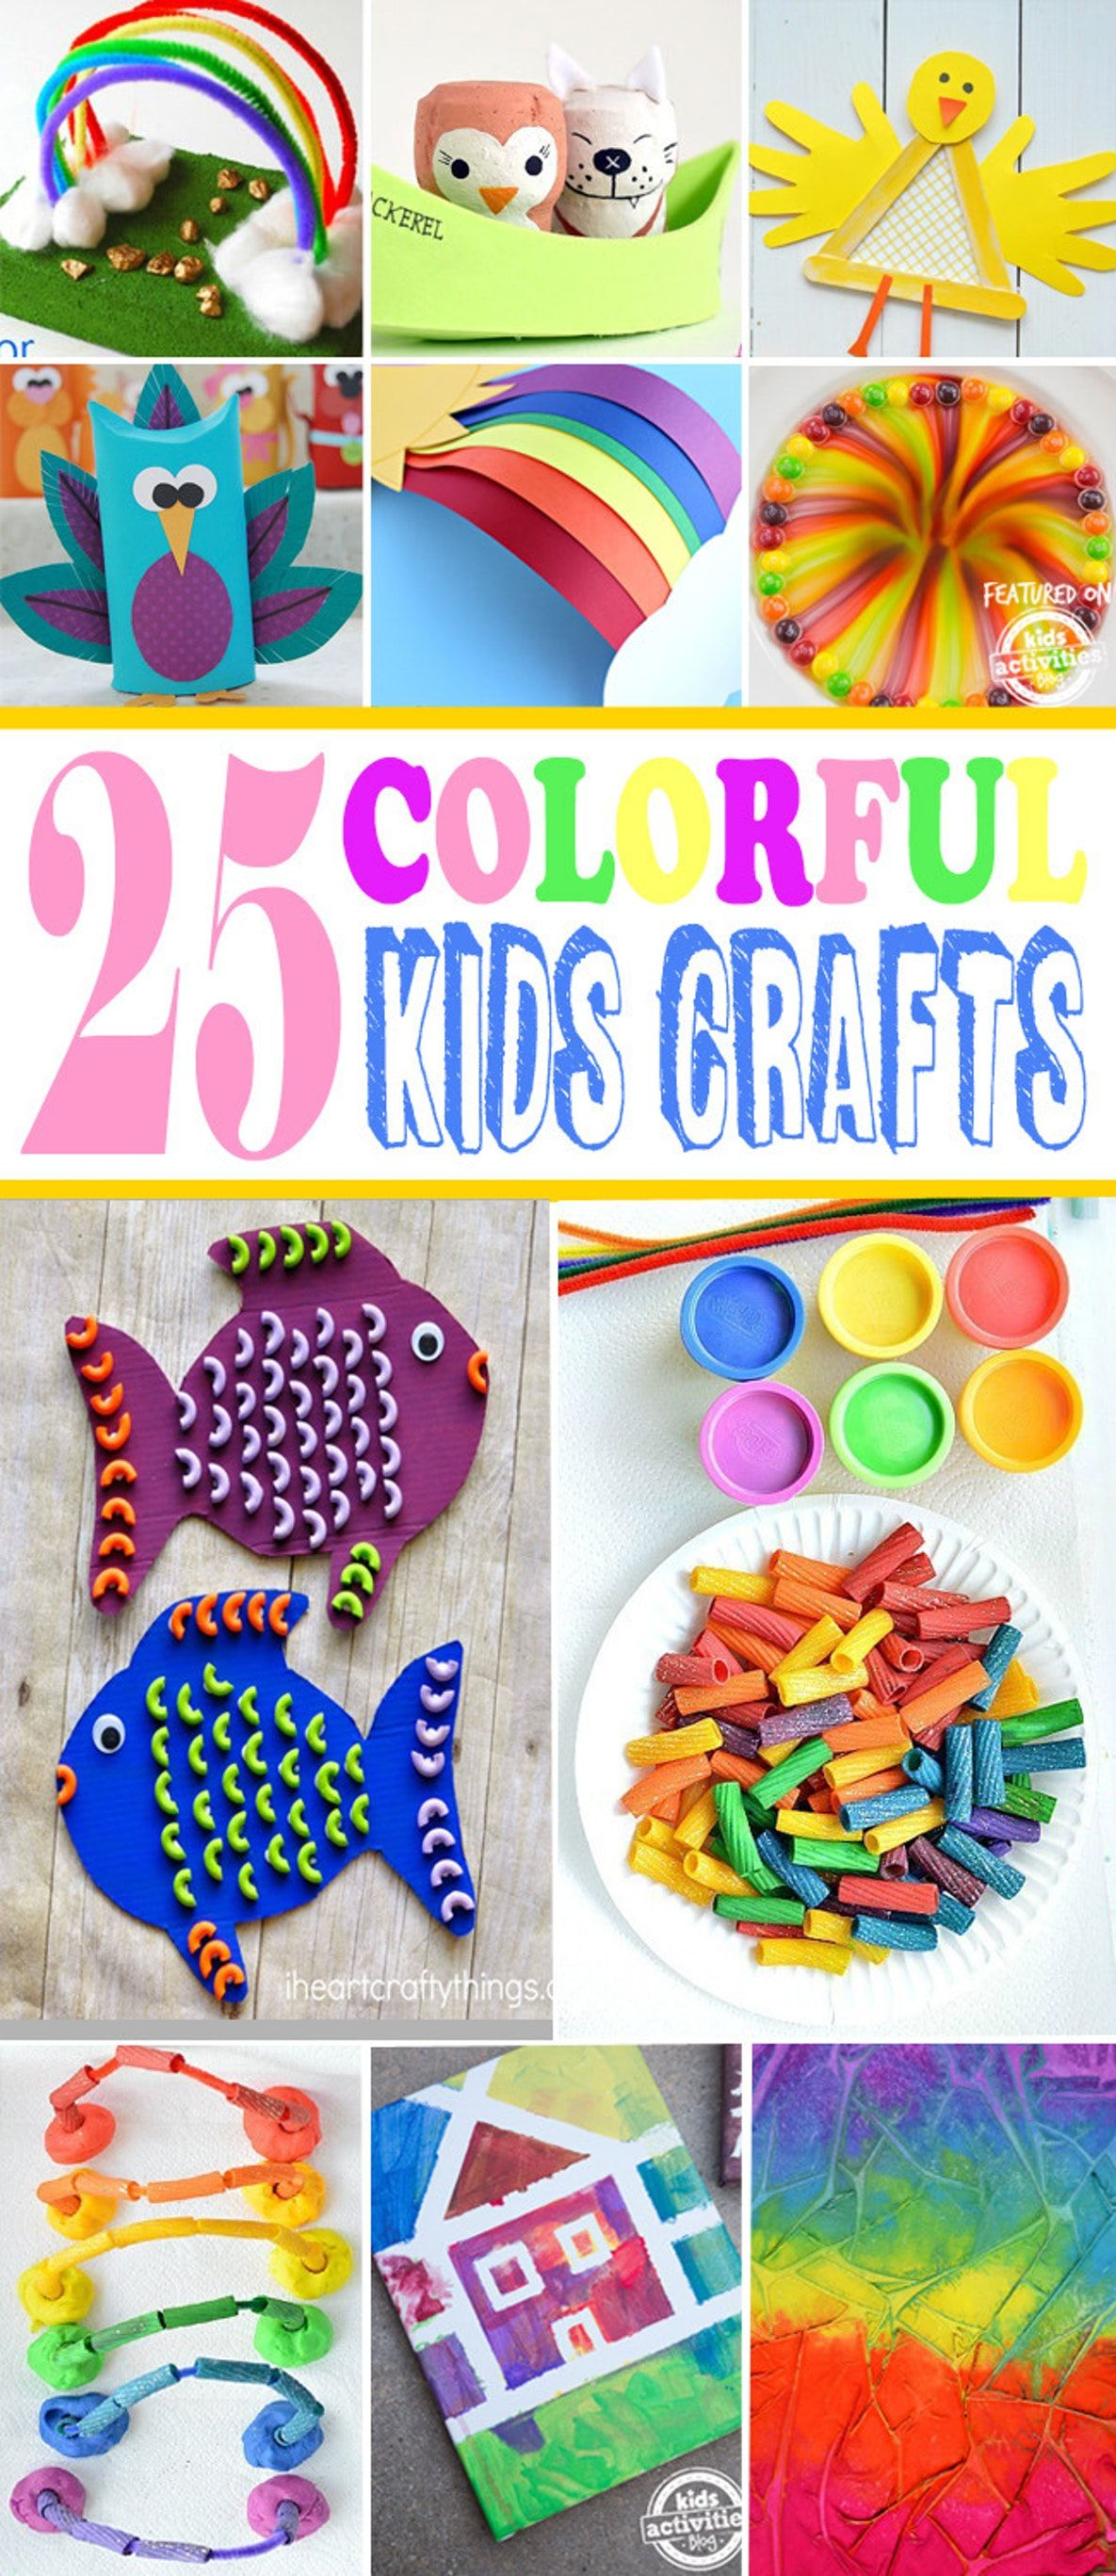 25+ Colorful Kids Craft Ideas  Kids Activities